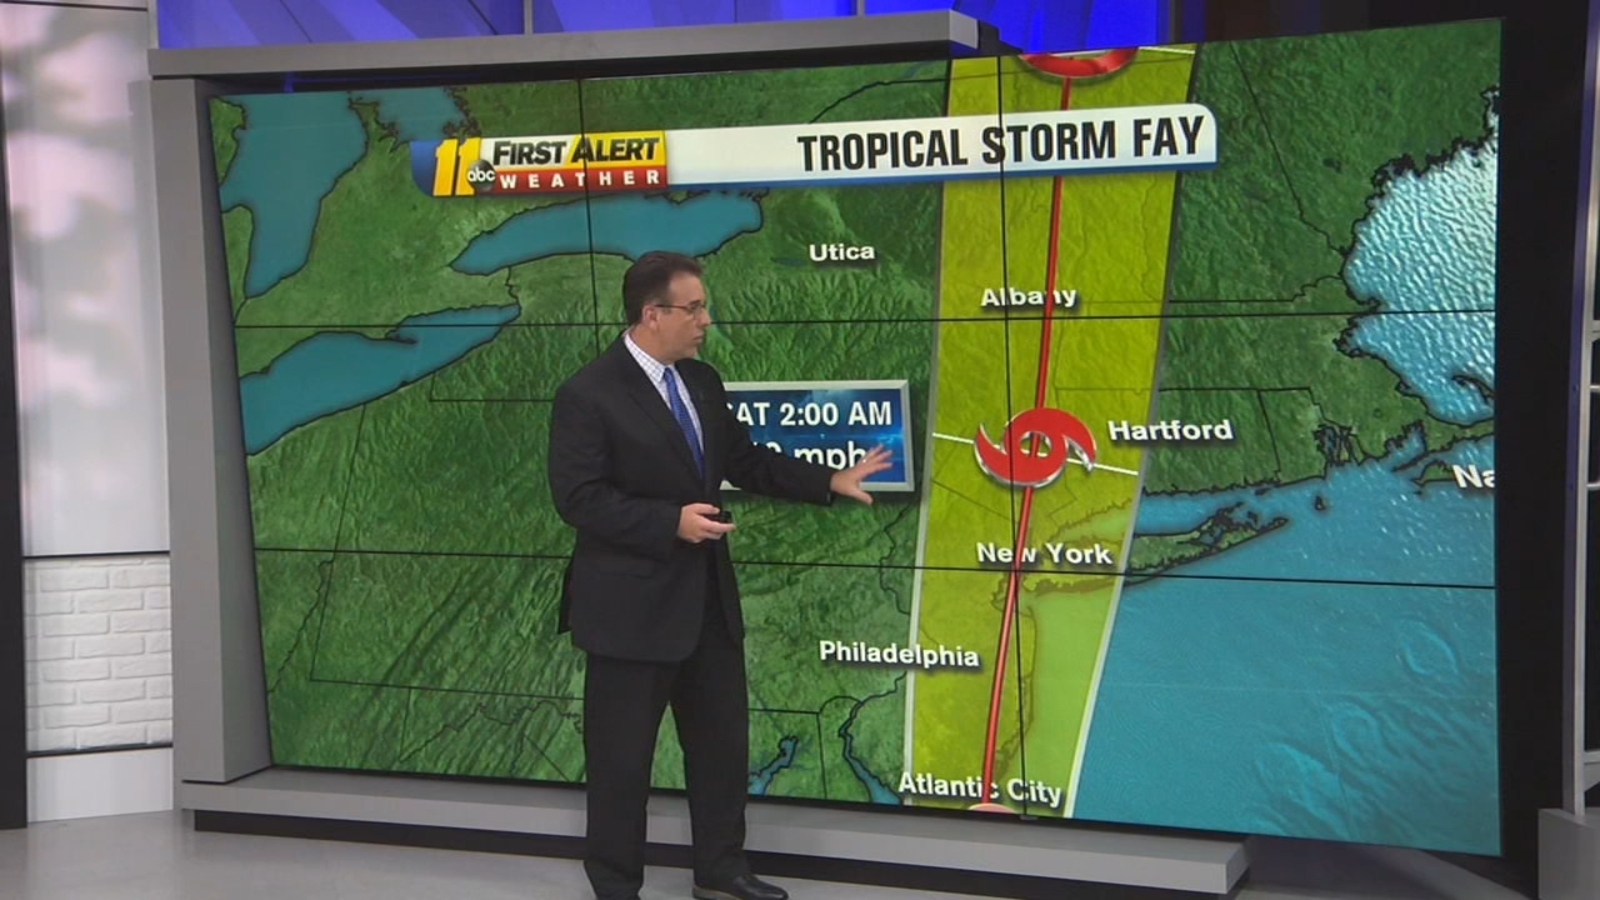 tropical storm fay - photo #12